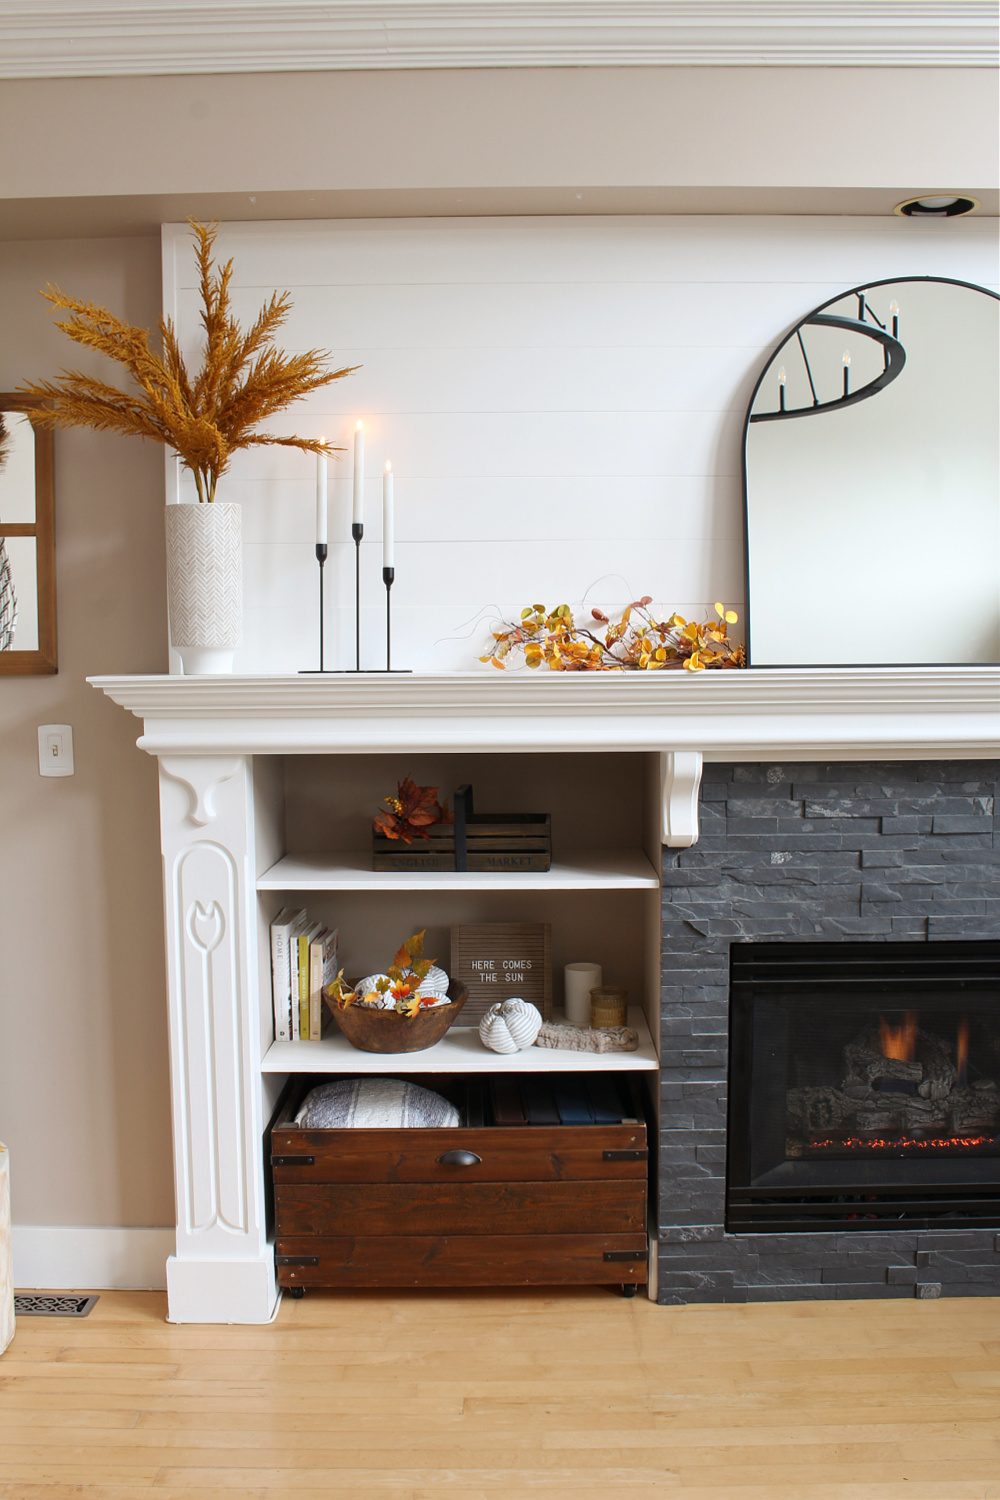 White mantel with black stone fireplace surround decorated for fall.